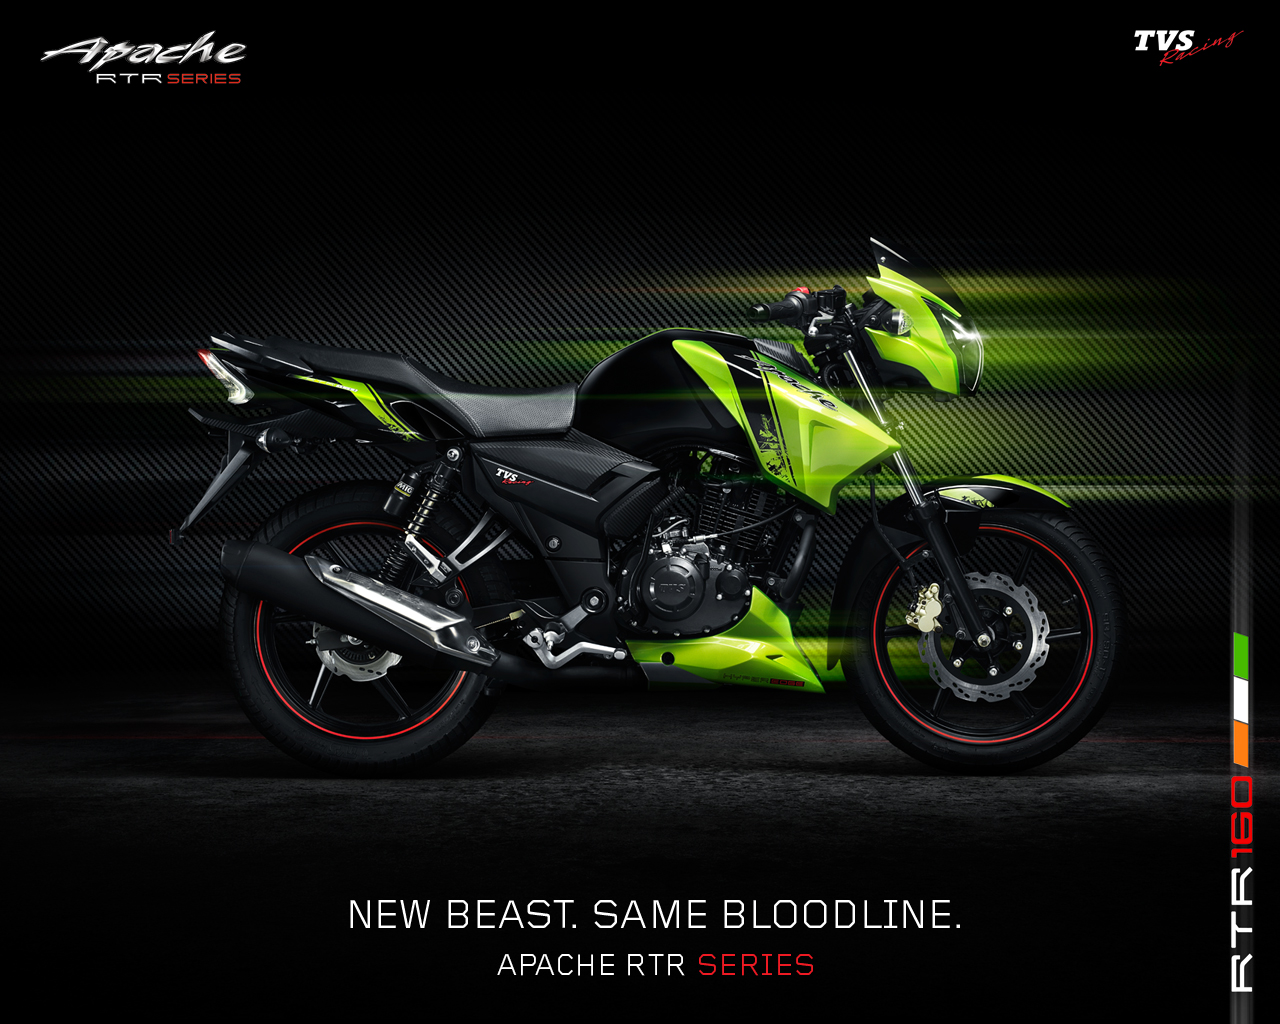 tvs apache rtr 160 new bs gallery